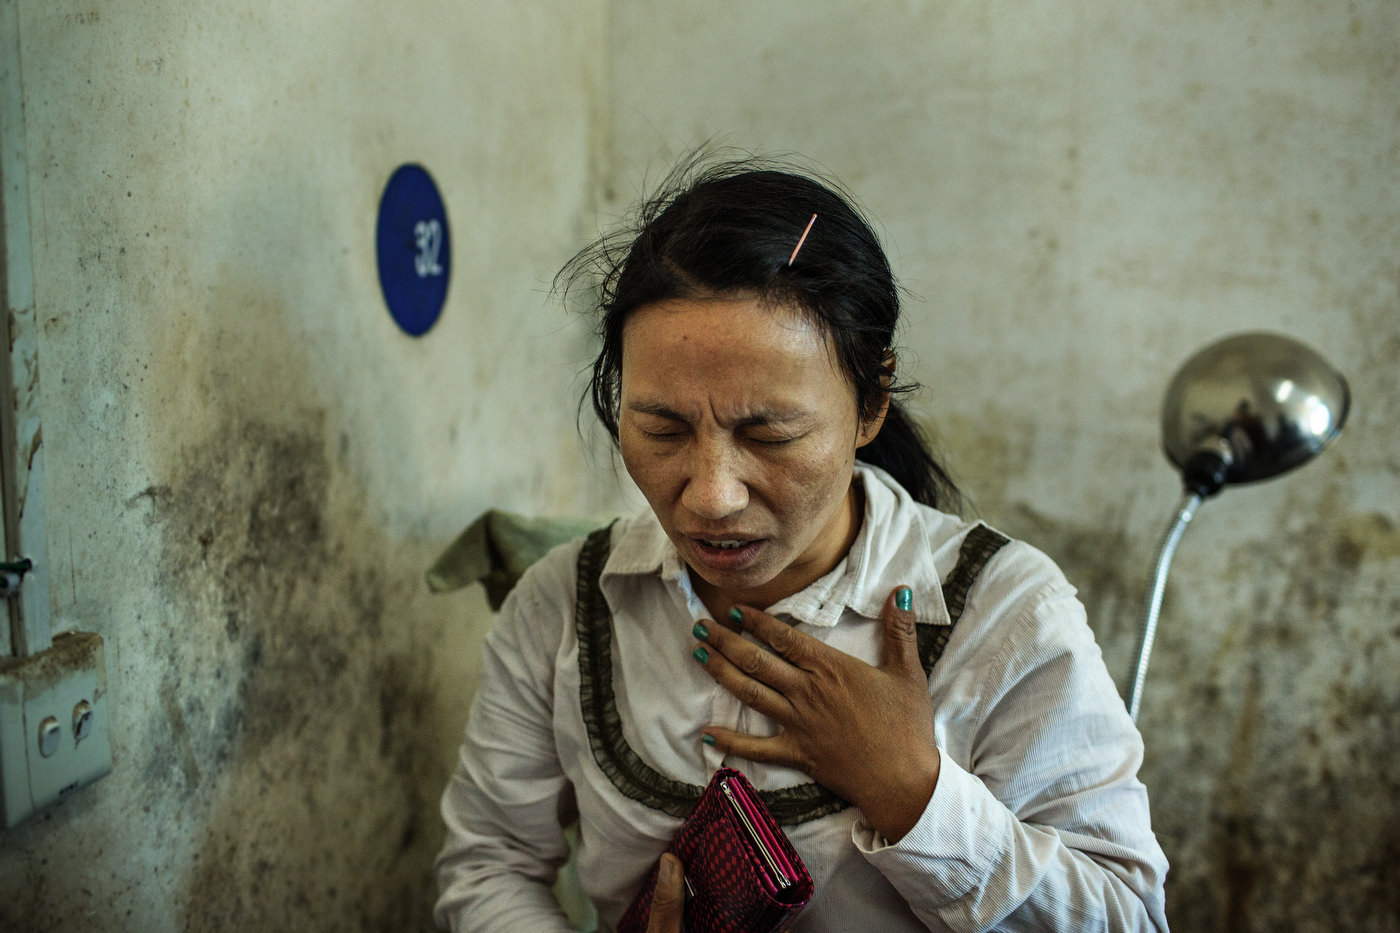 A bigger sister of Lamung Kailing prays while her little sister is being treated for injuries sustained from mortar shrapnel in Laiza Hospital.